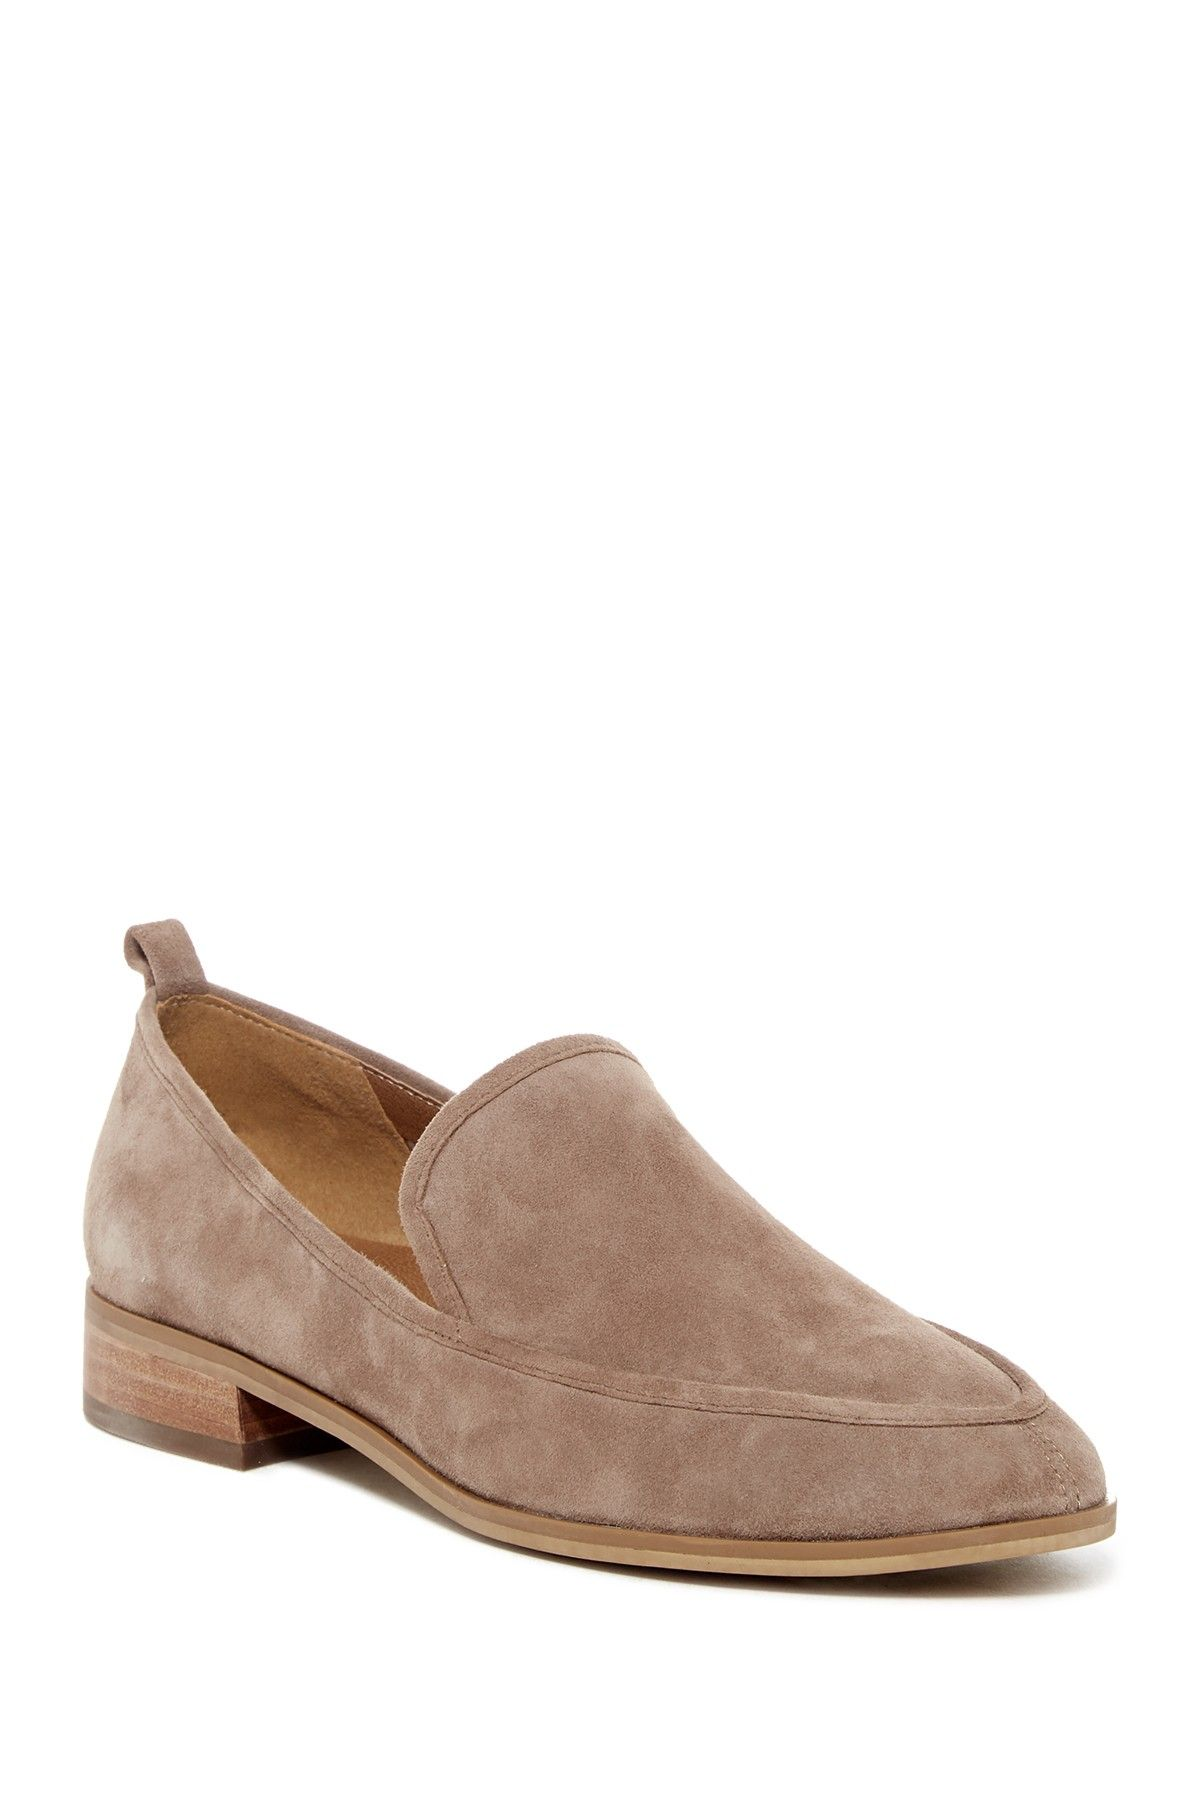 d165b196681 Kellen Almond Toe Loafer - Wide Width Available by SUSINA on  nordstrom rack